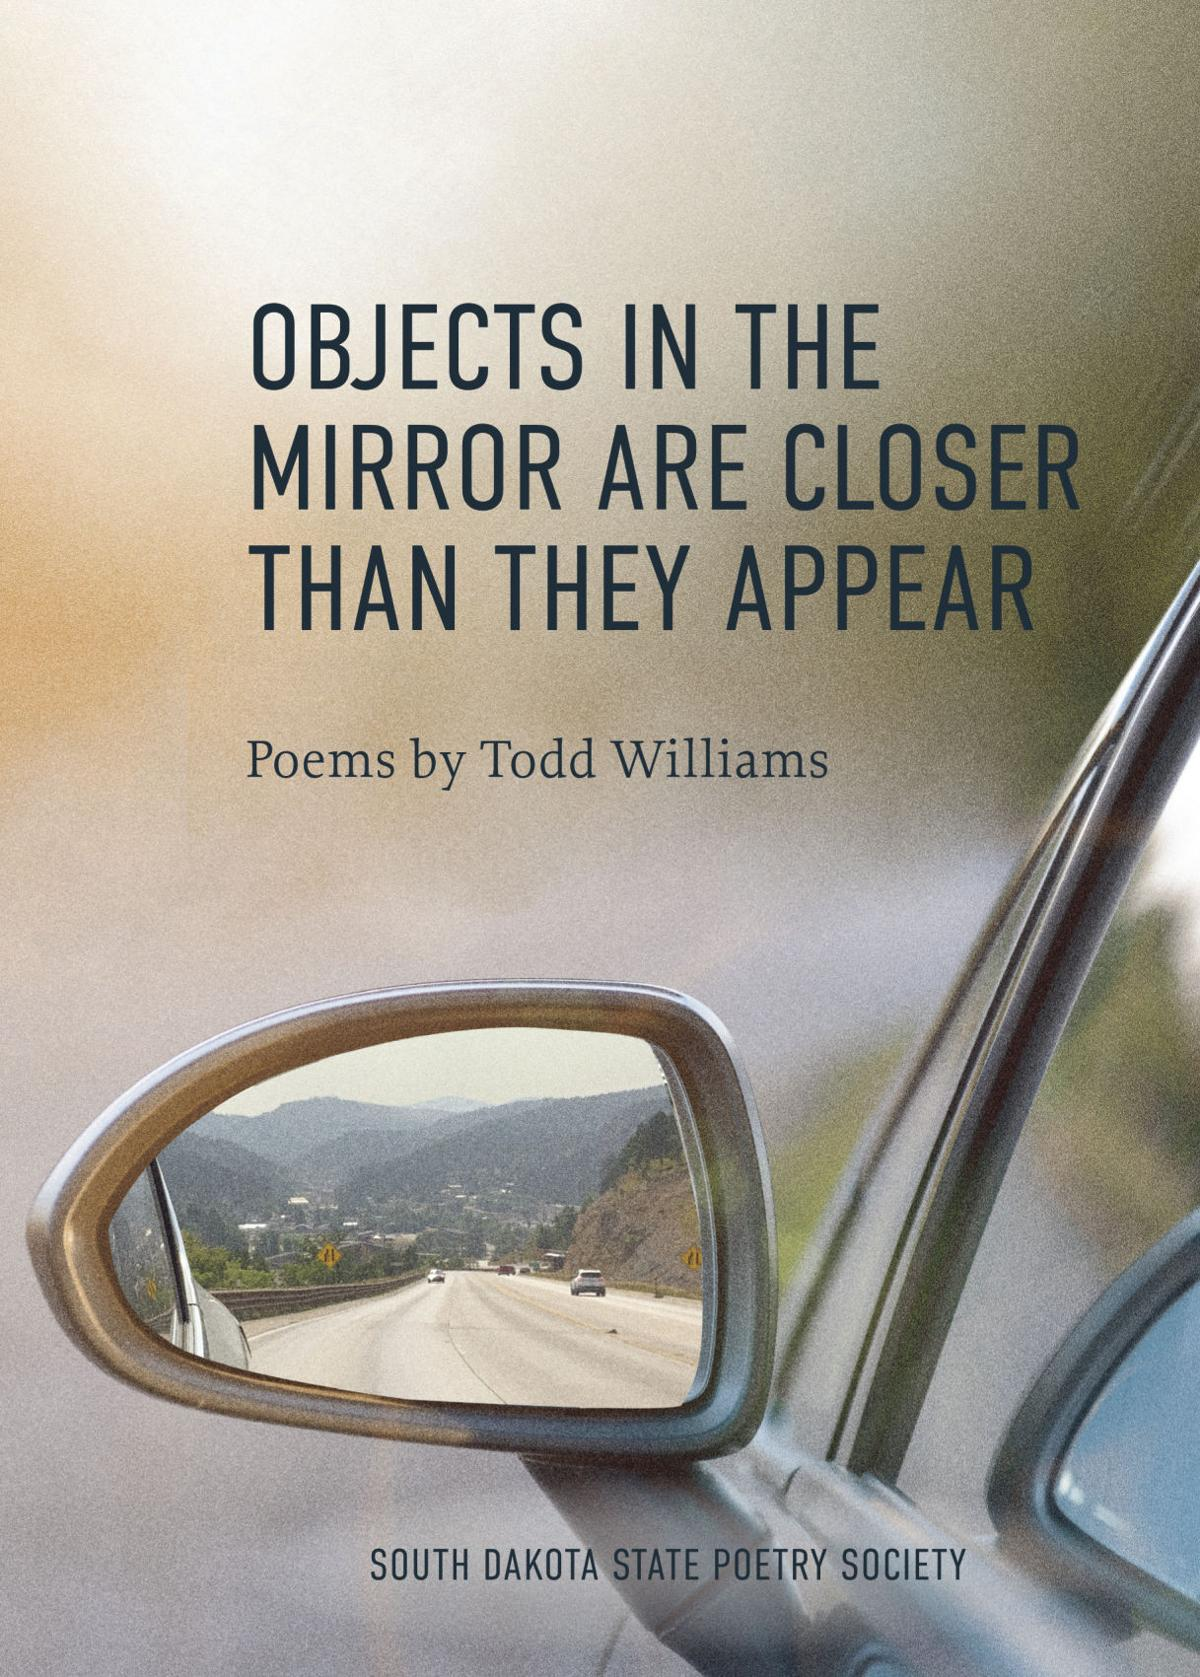 Todd Williams poetry book cover